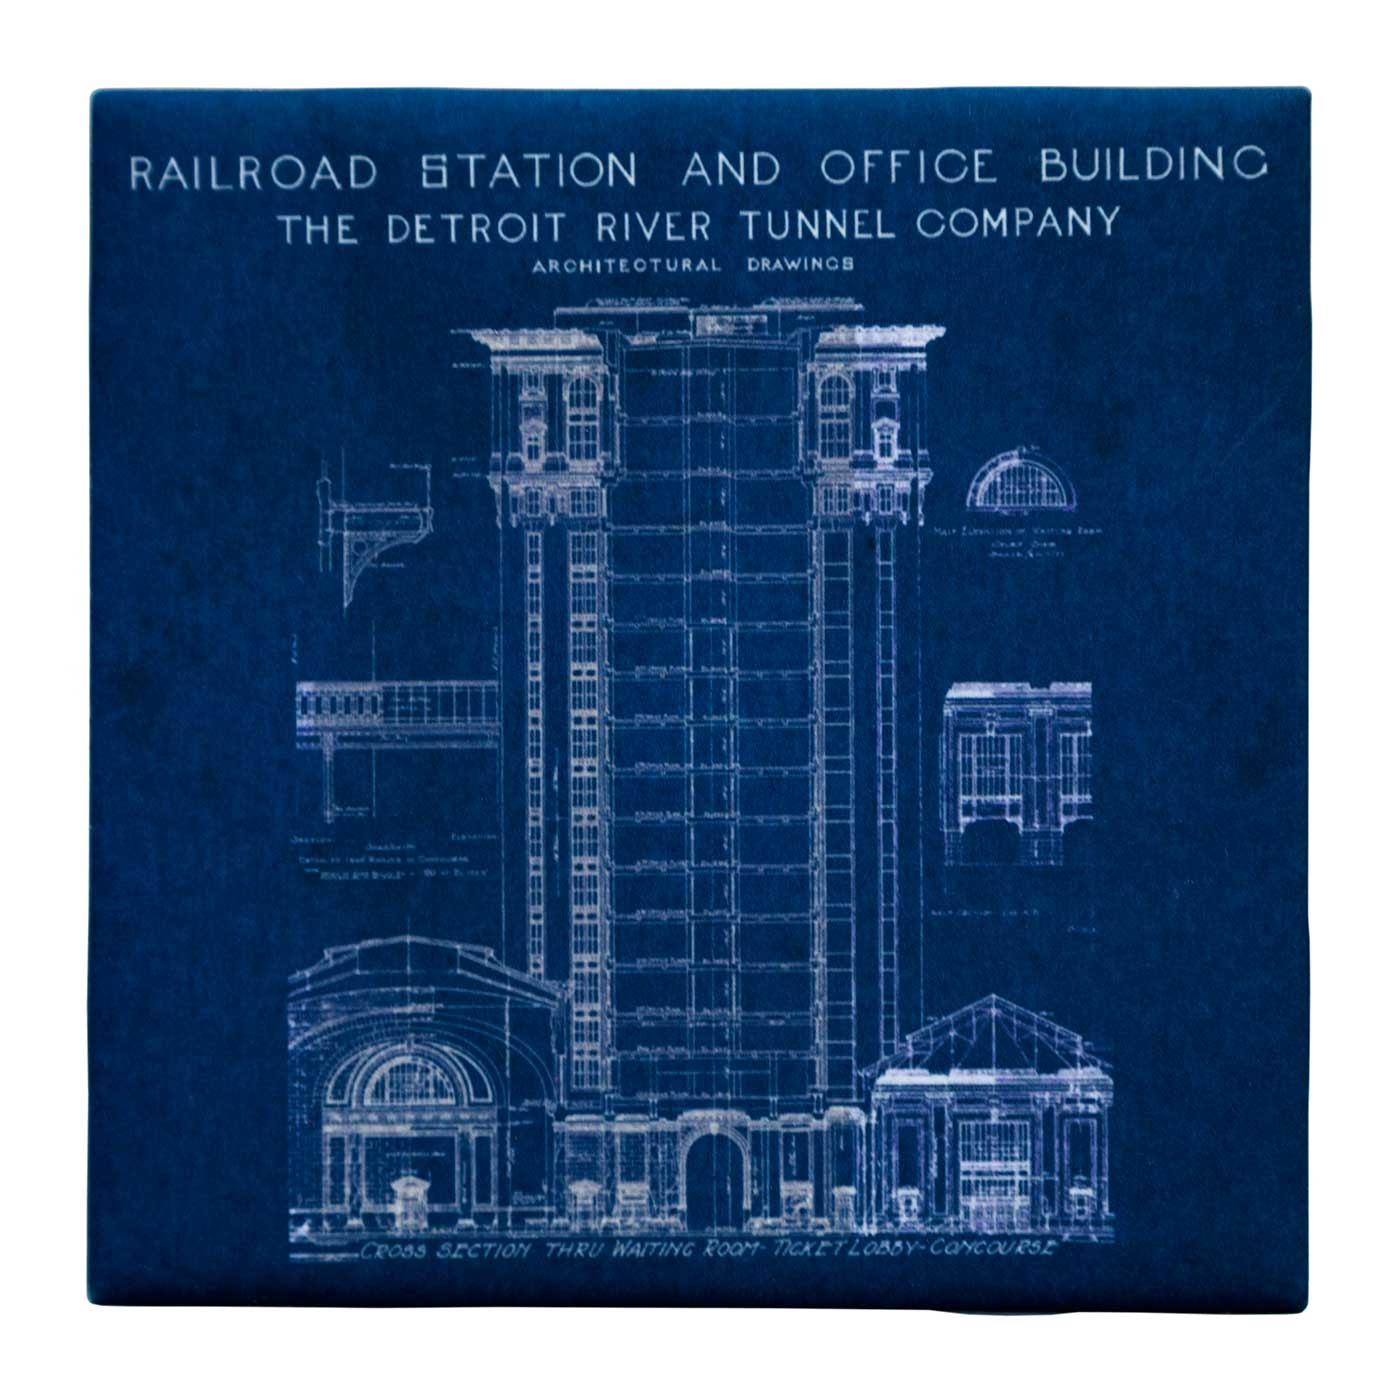 Train station blueprint navy drink coaster well done goods train station blueprint ceramic drink coaster navy blue well done goods malvernweather Image collections